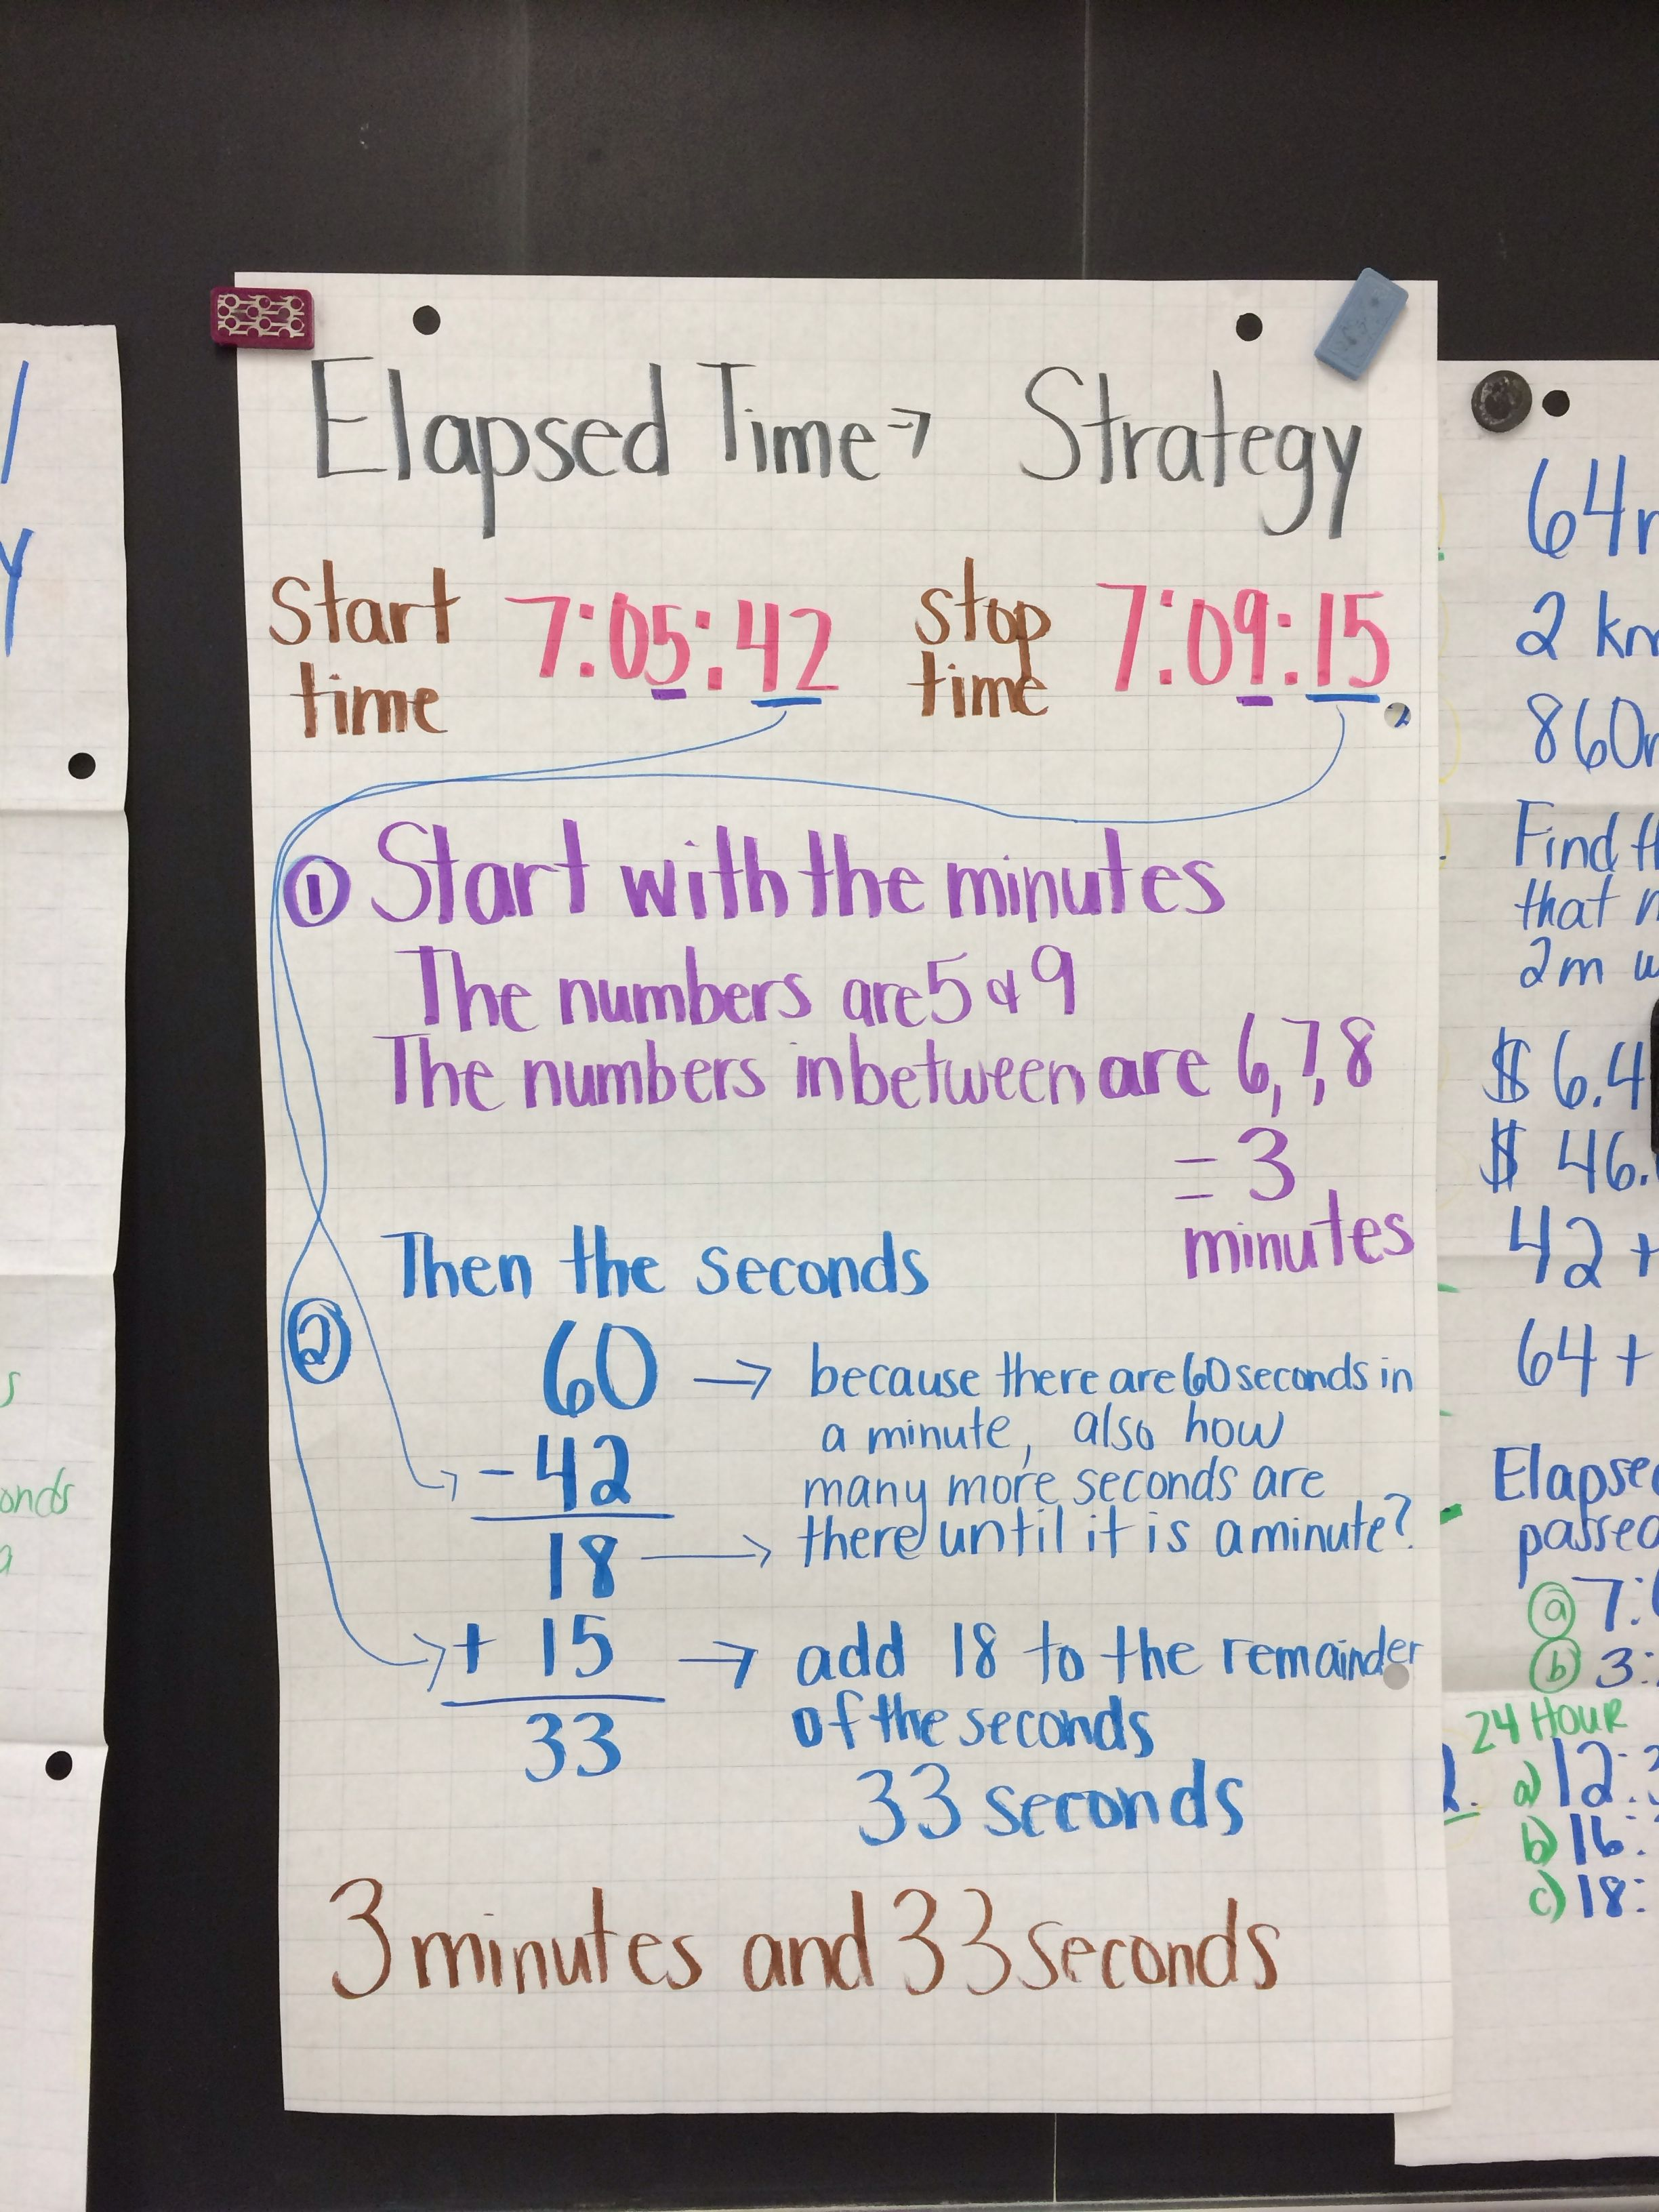 Strategy For Elapsed Time